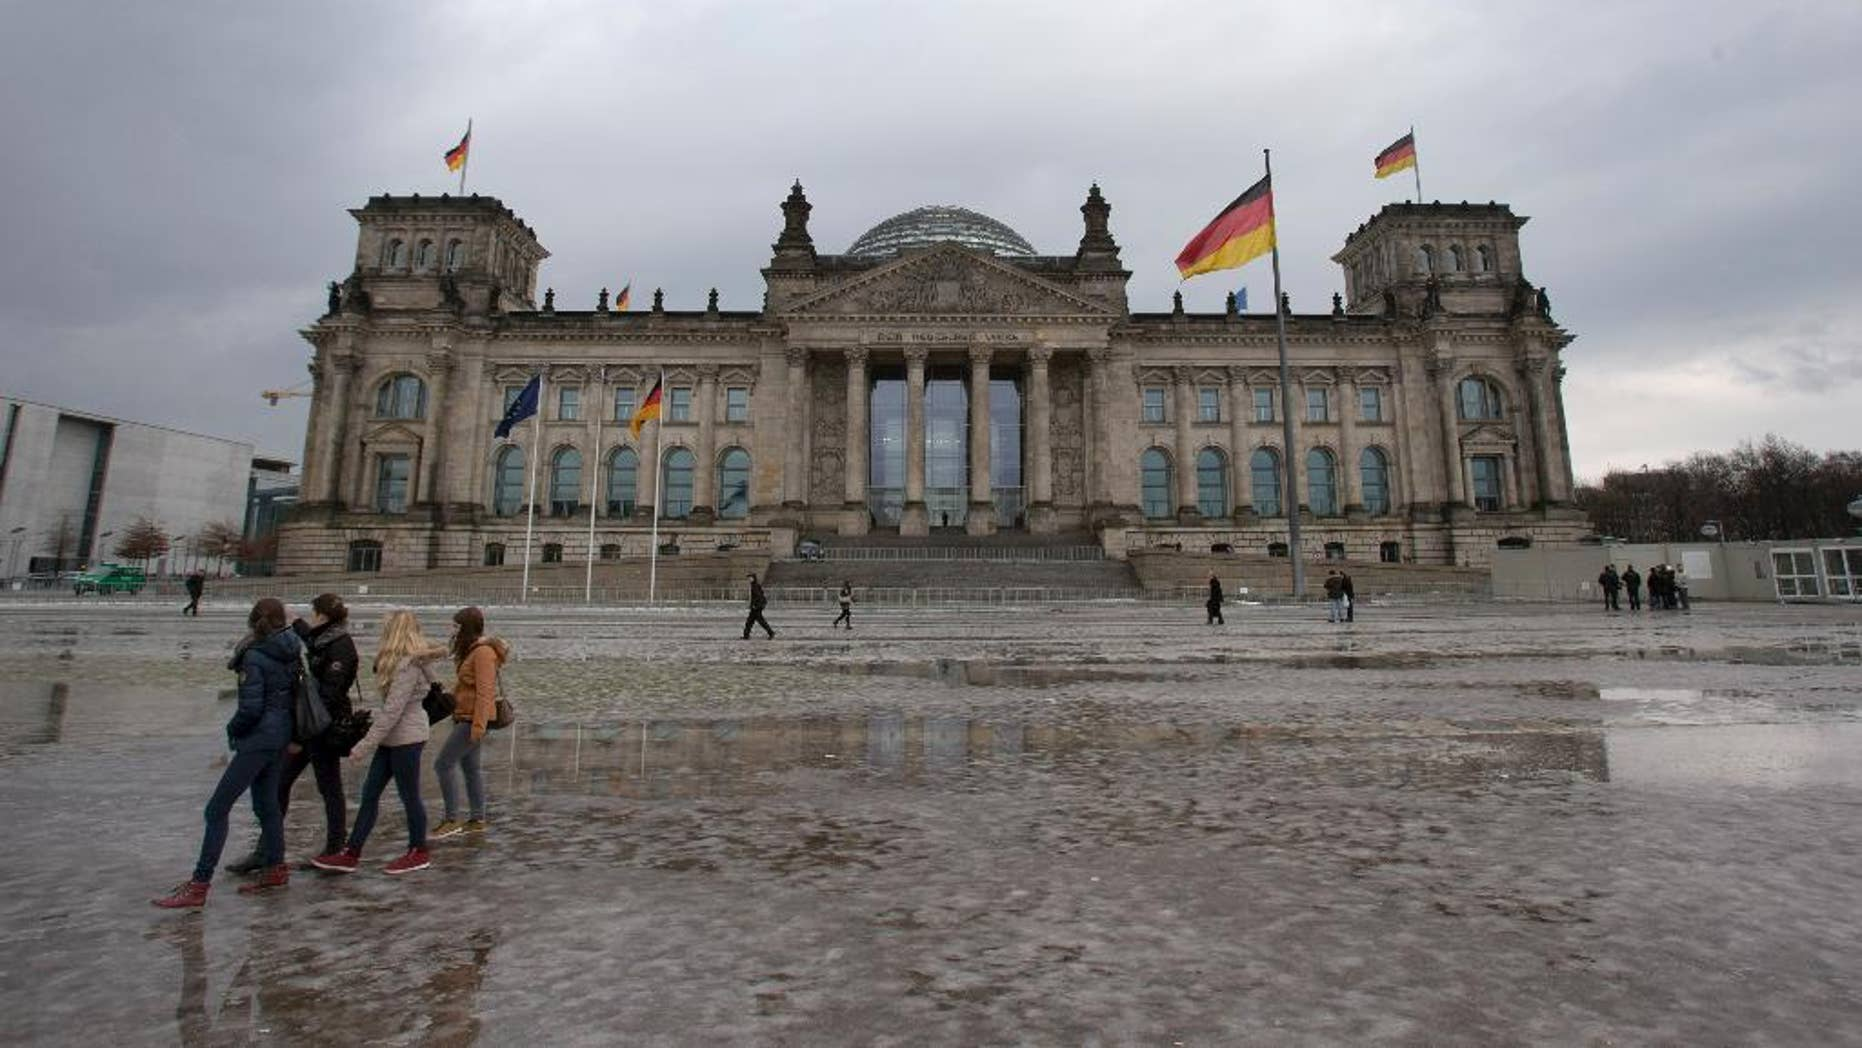 FILE - In this Jan. 29, 2013, file photo visitors walk past the Reichstag building, host of the German federal parliament Bundestag, in Berlin Germany. Berlin police say an unidentified person threw a Molotov cocktail onto the steps of the capital's landmark Reichstag but failed to start a blaze. The person threw the bottle full of a flammable liquid at a side entrance of the building early Monday morning, Sept. 29, 2014, police said. They say the liquid ignited for a short time and then sputtered out, and the attacker fled on foot. Nobody was injured. (AP Photo/Michael Sohn, File)